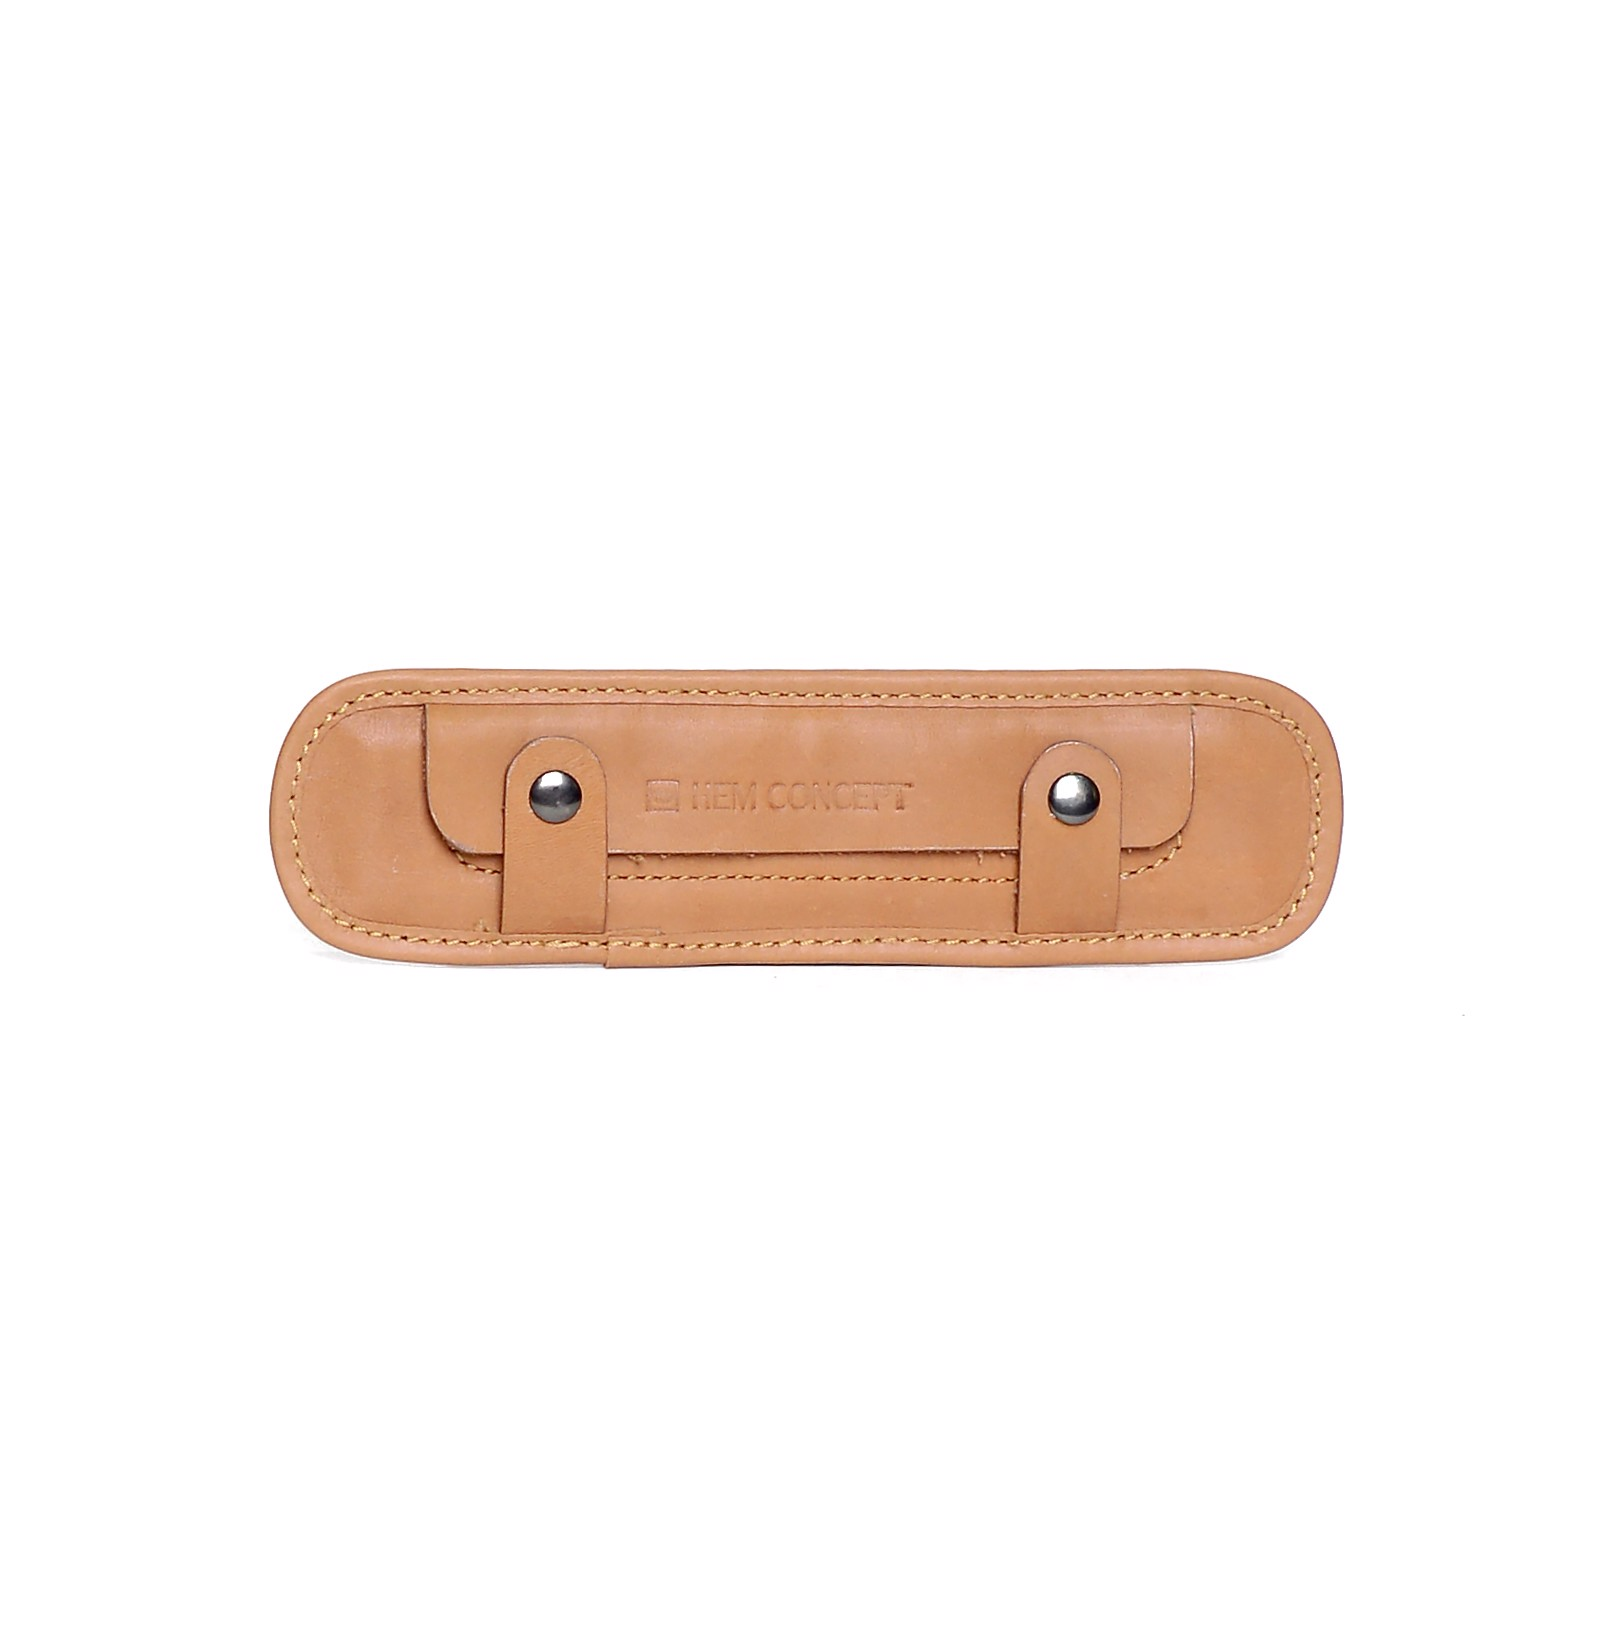 SHOULDER STRAP PAD - TAN